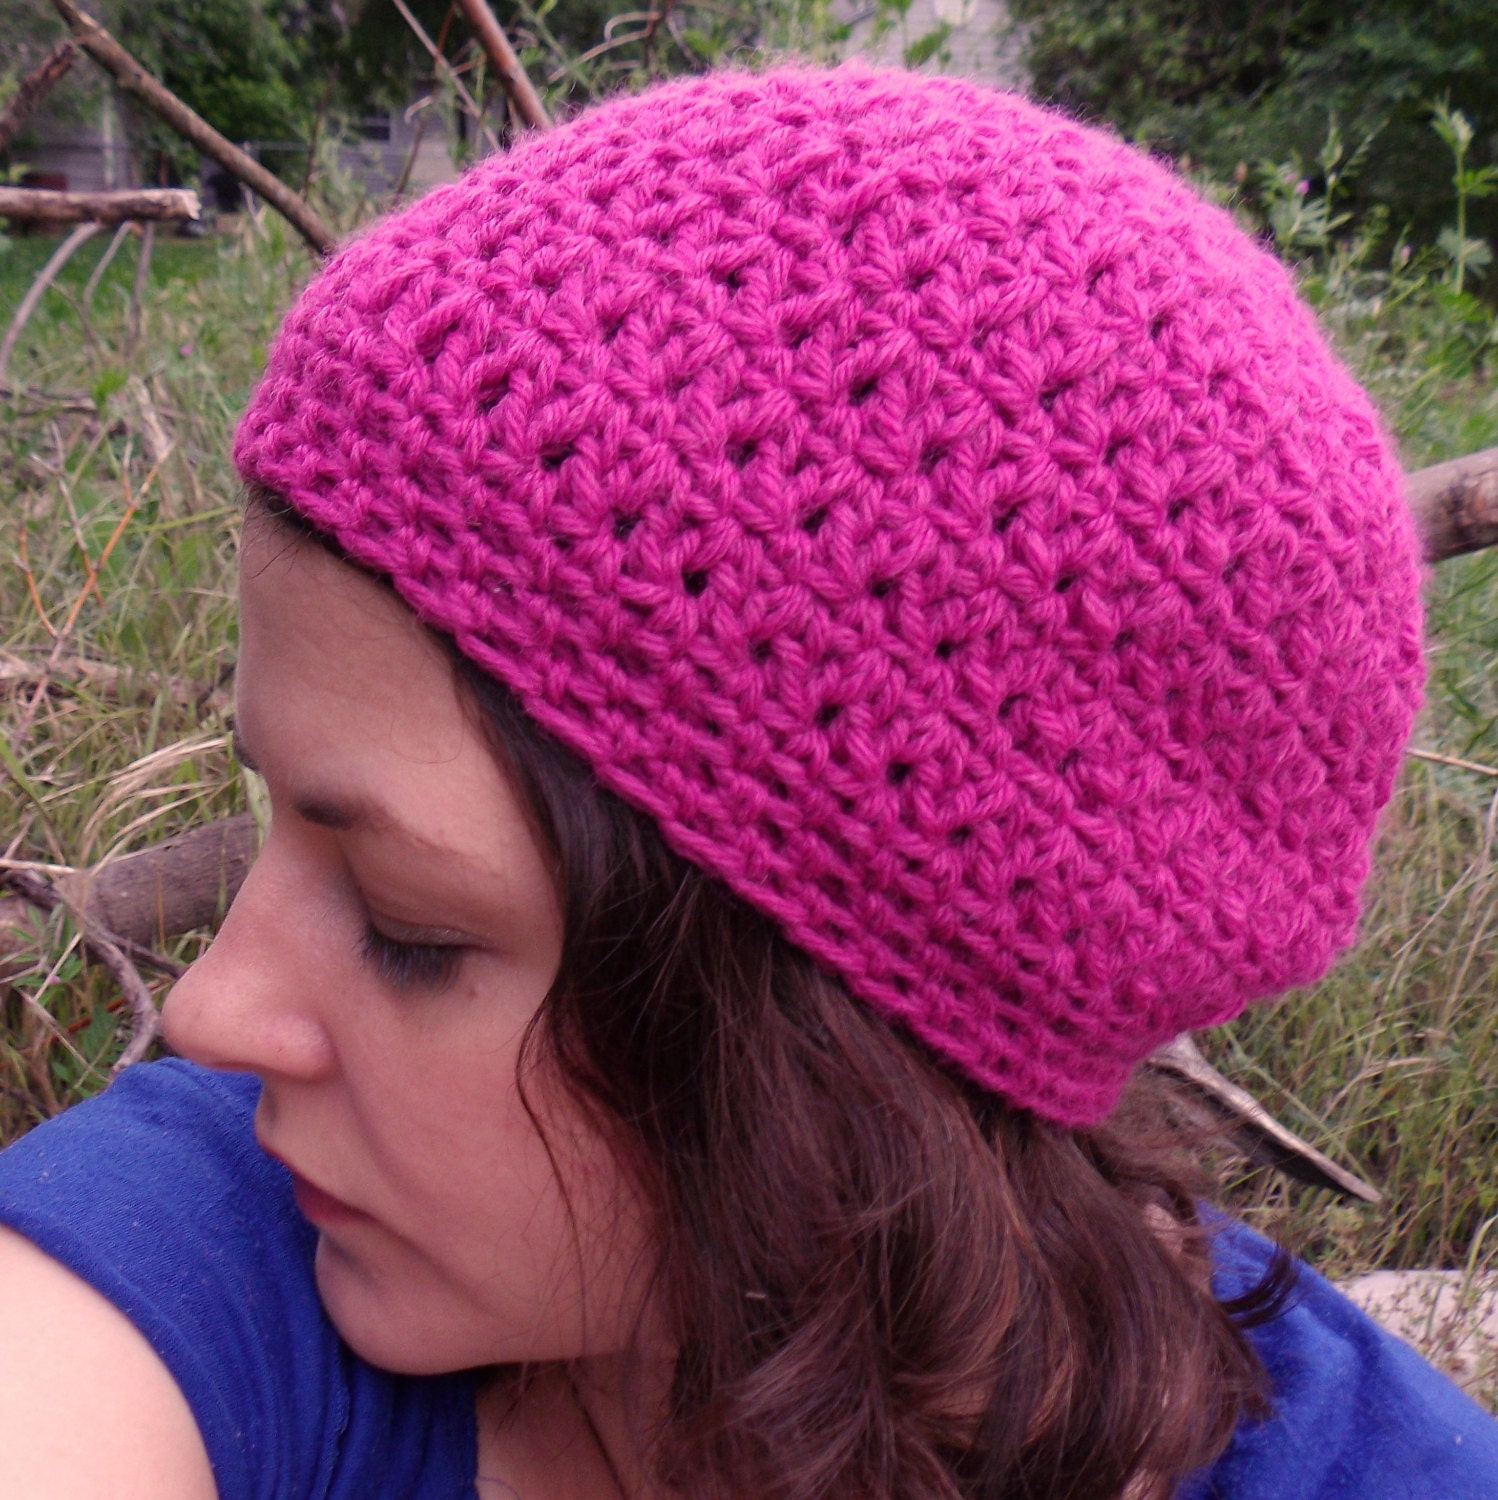 FLOPPY BERET CROCHET PATTERN | CROCHET PATTERNS